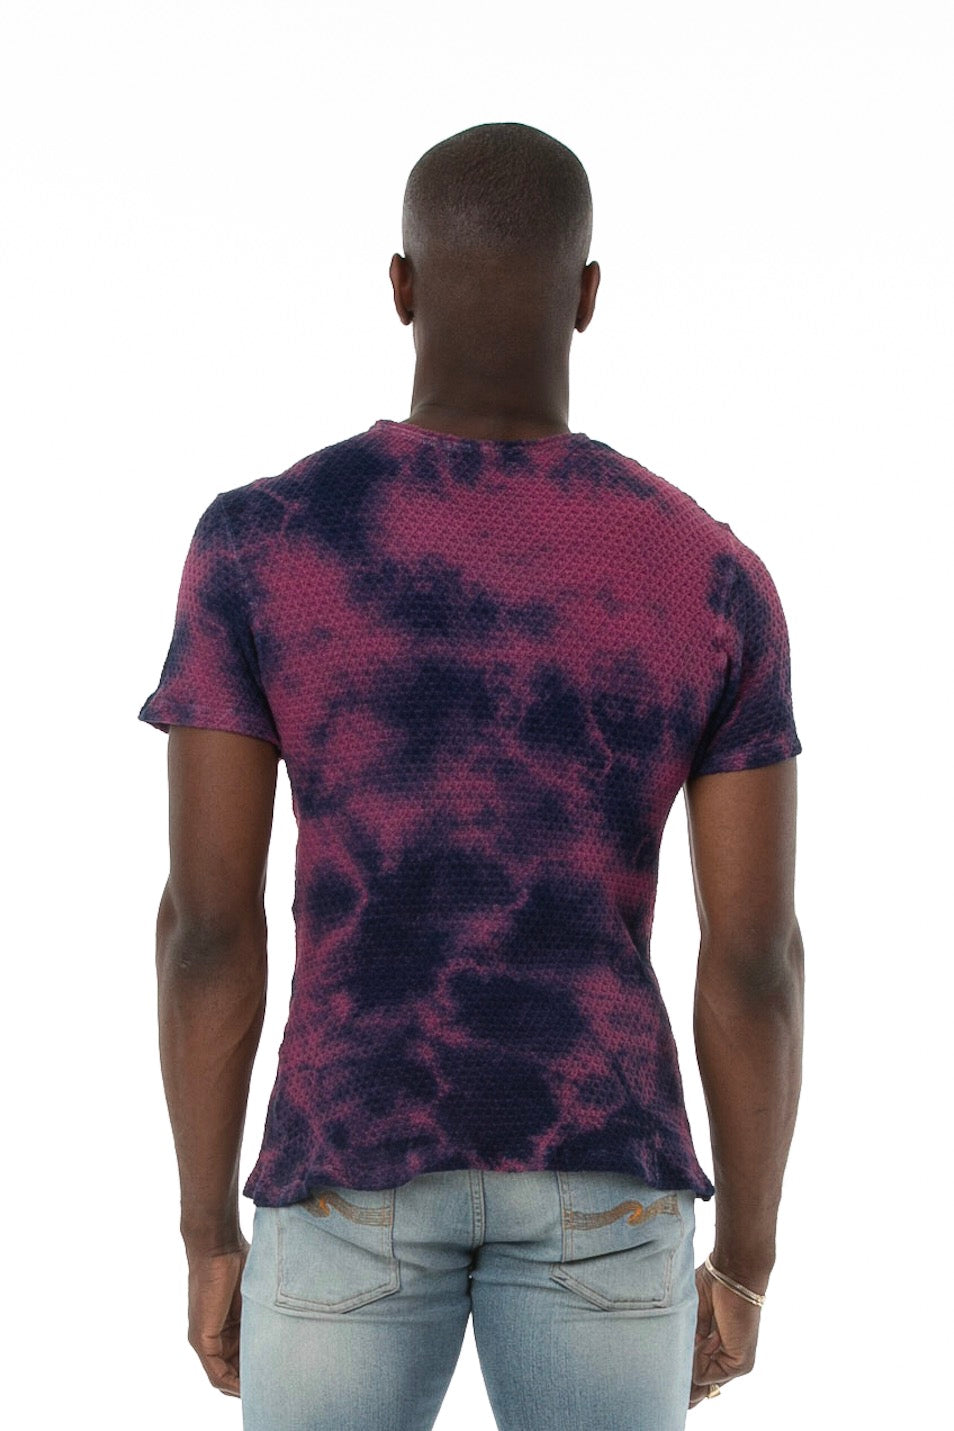 Backside of male model wearing Pointelle Tee in Washed Violet